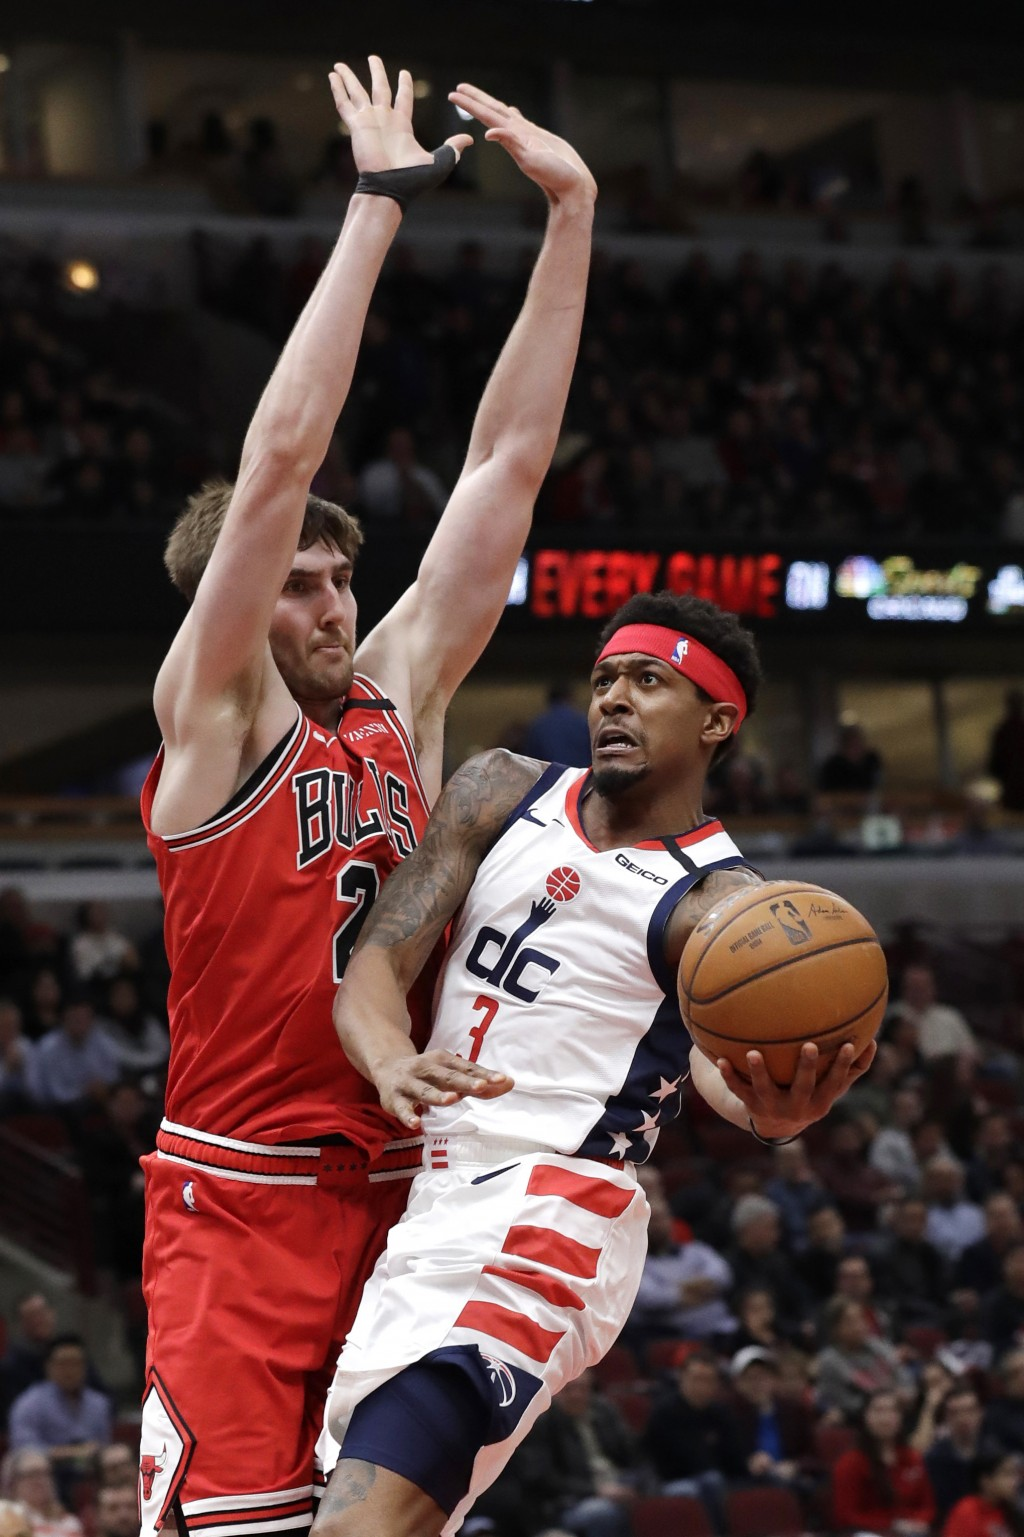 Washington Wizards guard Bradley Beal, right, drives to the basket against Chicago Bulls forward Luke Kornet during the first half of an NBA basketbal...